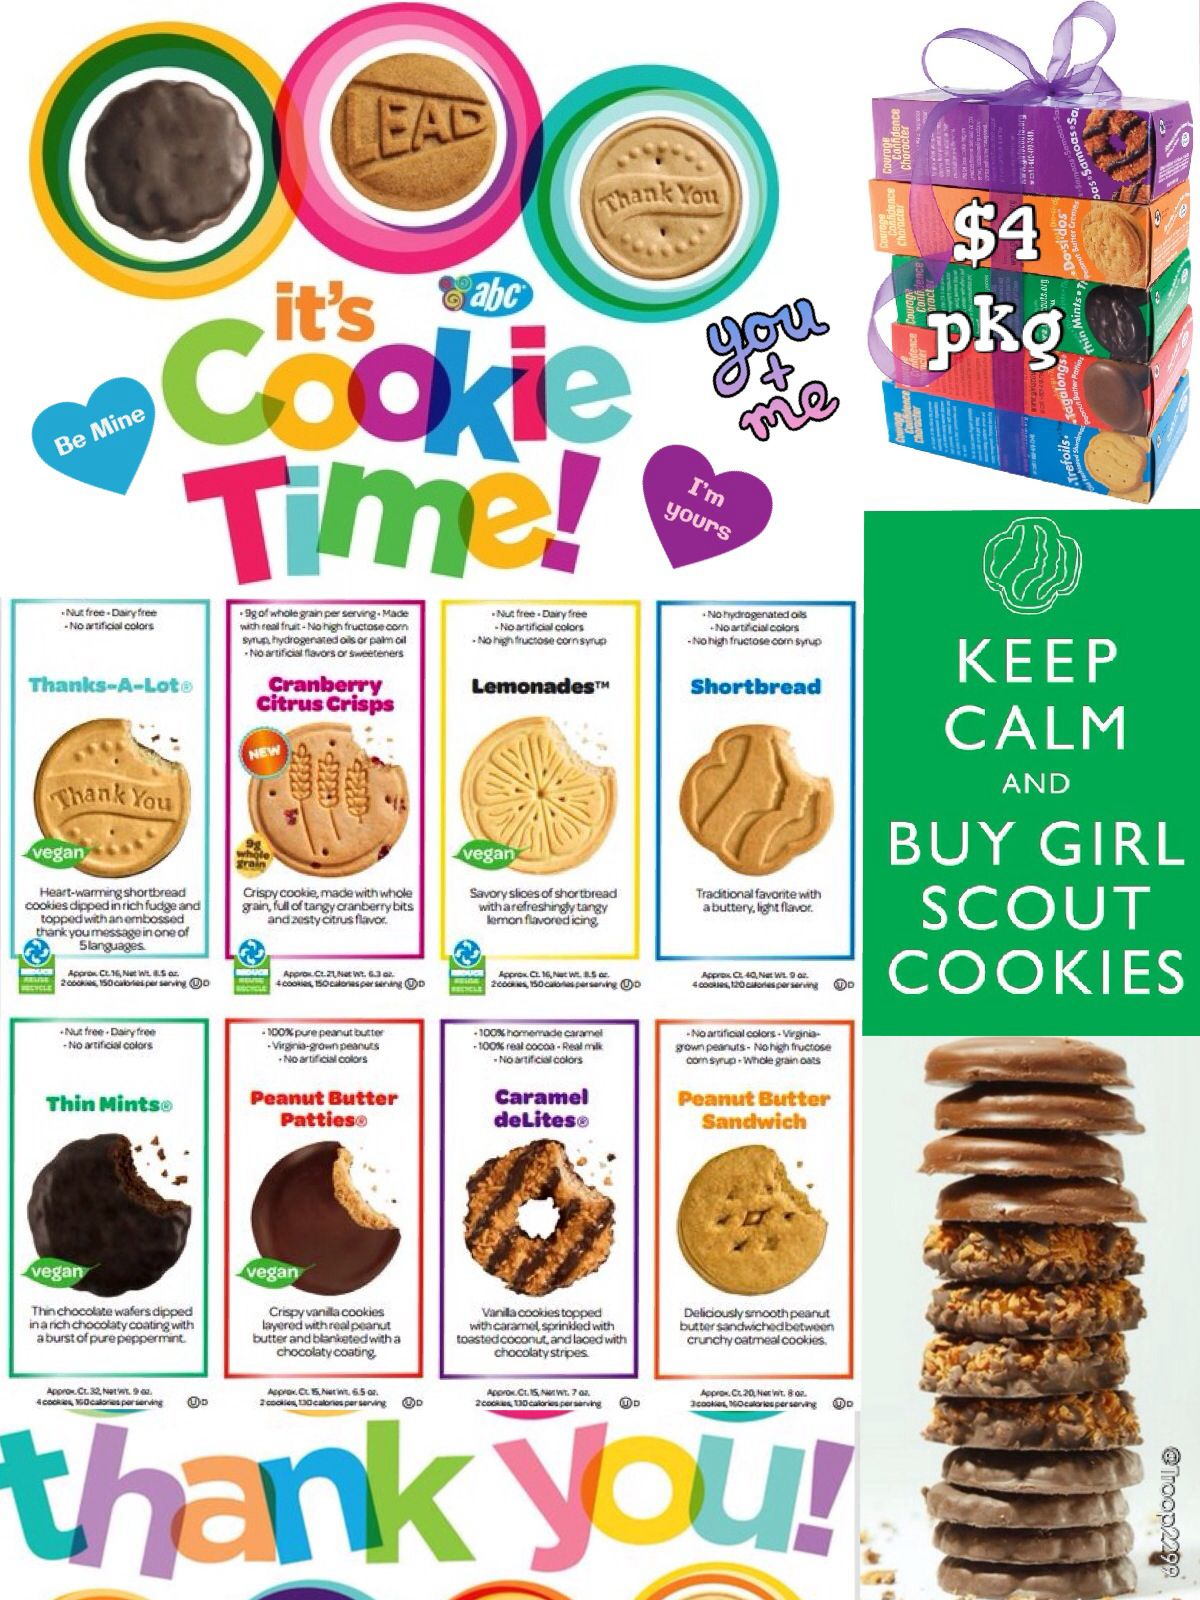 d667158bf2db06432fd2b83873273ceb Online Order Form For Scout Cookies on blank template, decorated sugar, place bake,